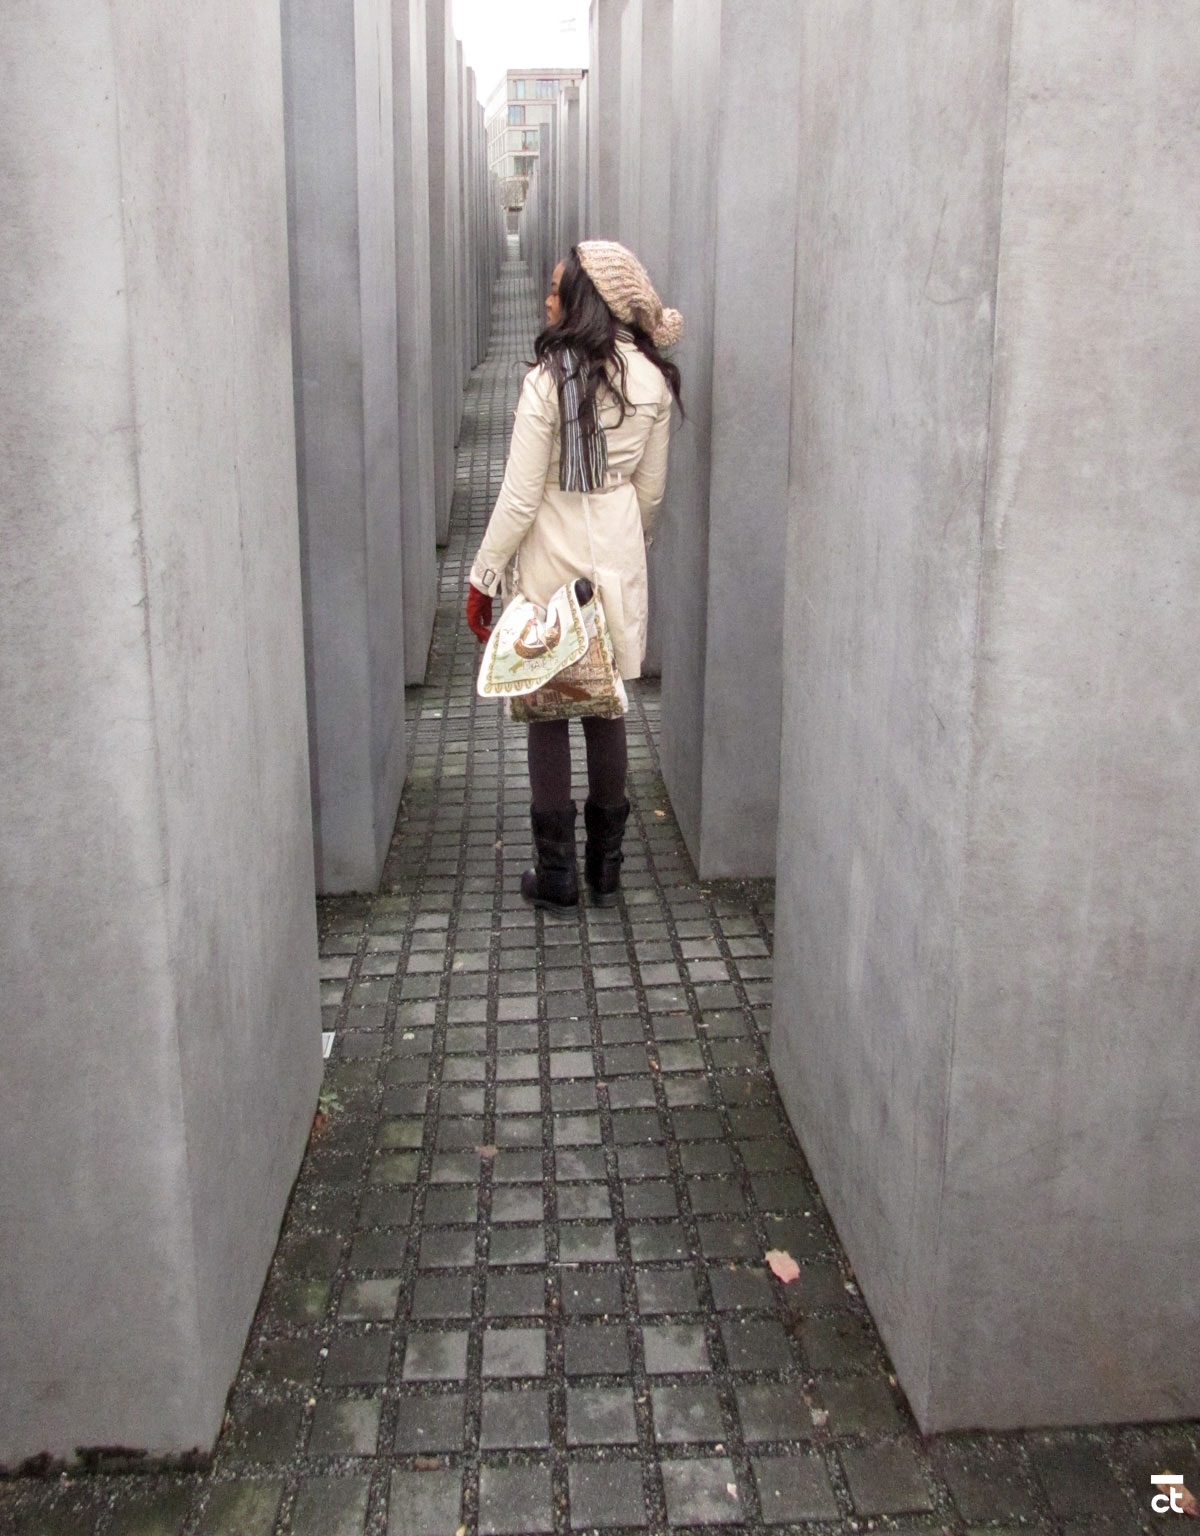 HOLOCAUST MEMORIAL - BERLIN TRAVEL GUIDE: 55 Things to Do in Berlin, Germany